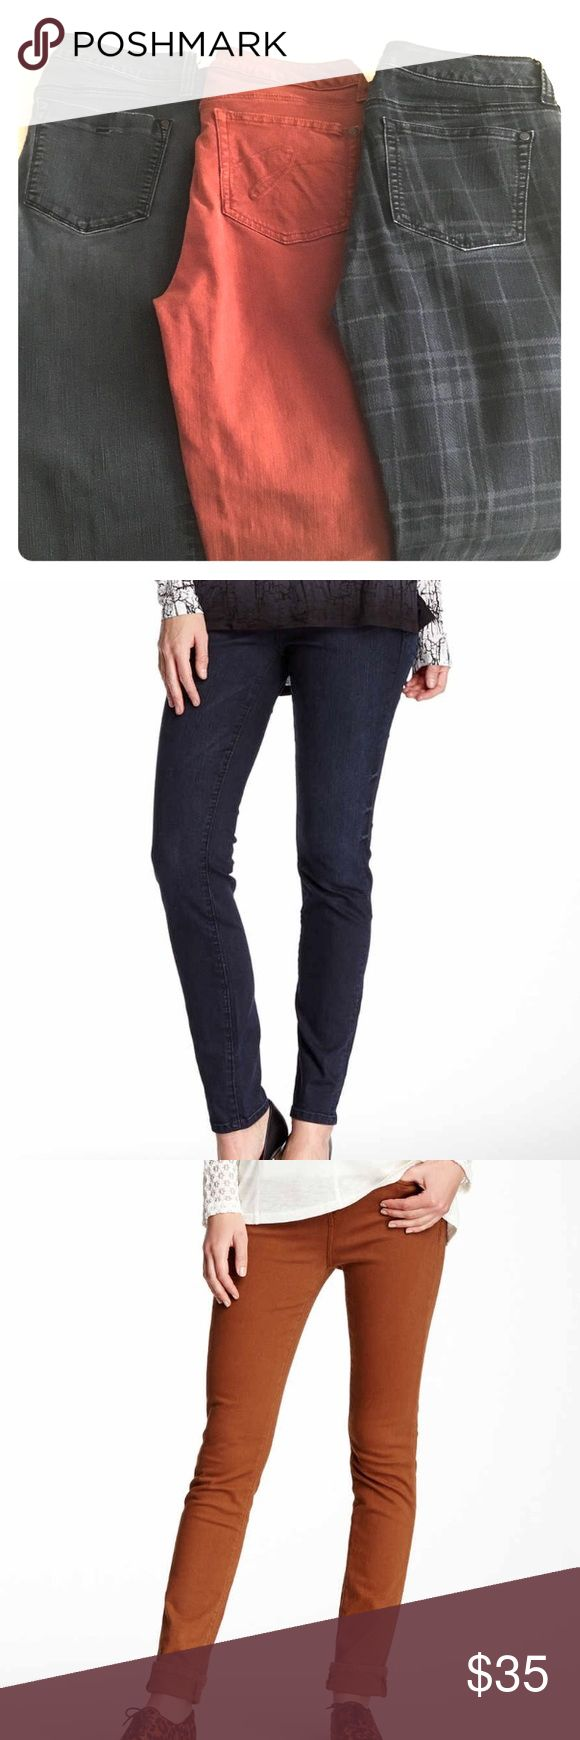 Miraclebody Jeans - 3 Pack Bundle If you've ever worn Miraclebody jeans then you know the feeling of looking slim and sleek!! 3 pack bundle all the same size. Gently used with so much life left in them and all Size 8. Miraclebody Jeans Skinny